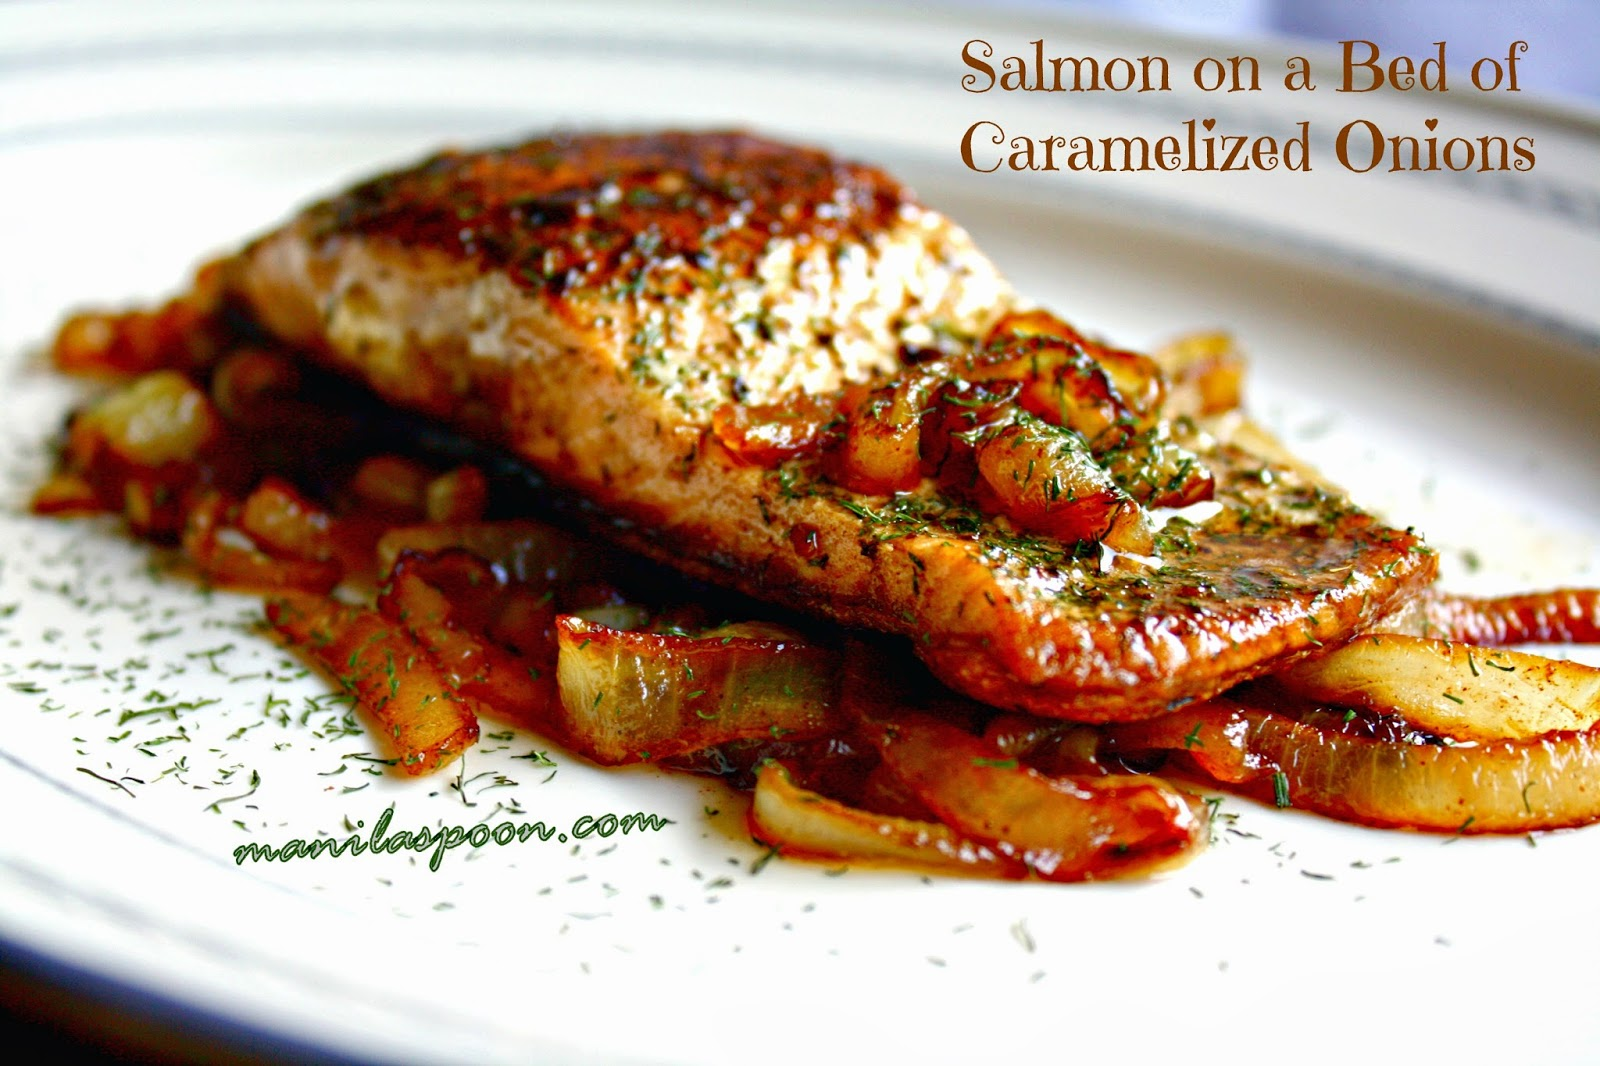 This super EASY SALMON RECIPE is so delicious that even kids love it! The caramelized onions are sweet and add so much flavor to the fish.